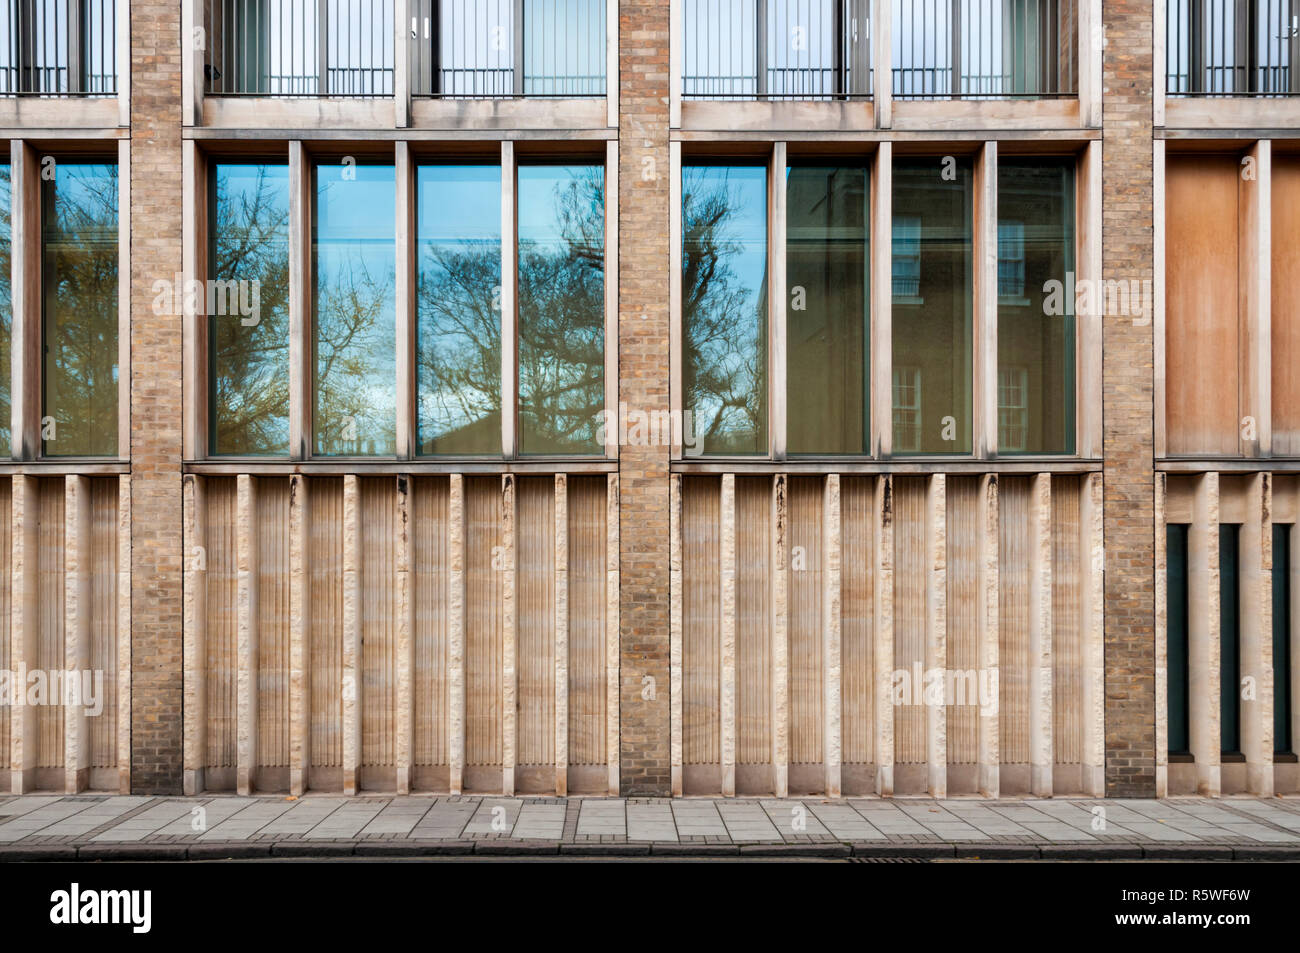 The West Court of Jesus College, Jesus Lane, Cambridge.  Designed by Niall McLaughlin Architects. Stock Photo